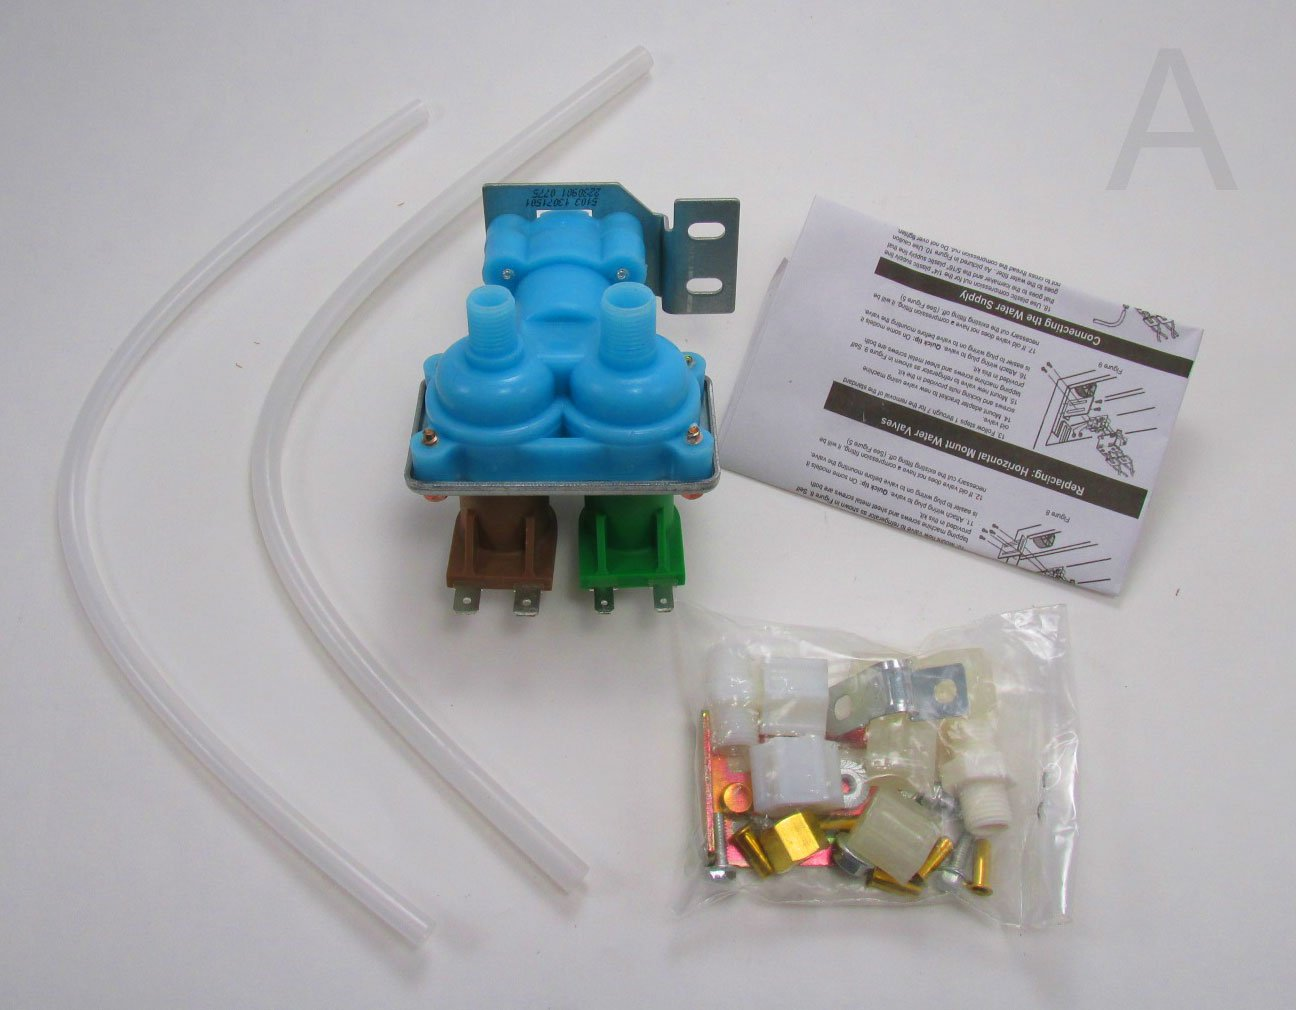 Amazon.com: 2155062 - Quality Replacement Dual Water Valve Kit for ...